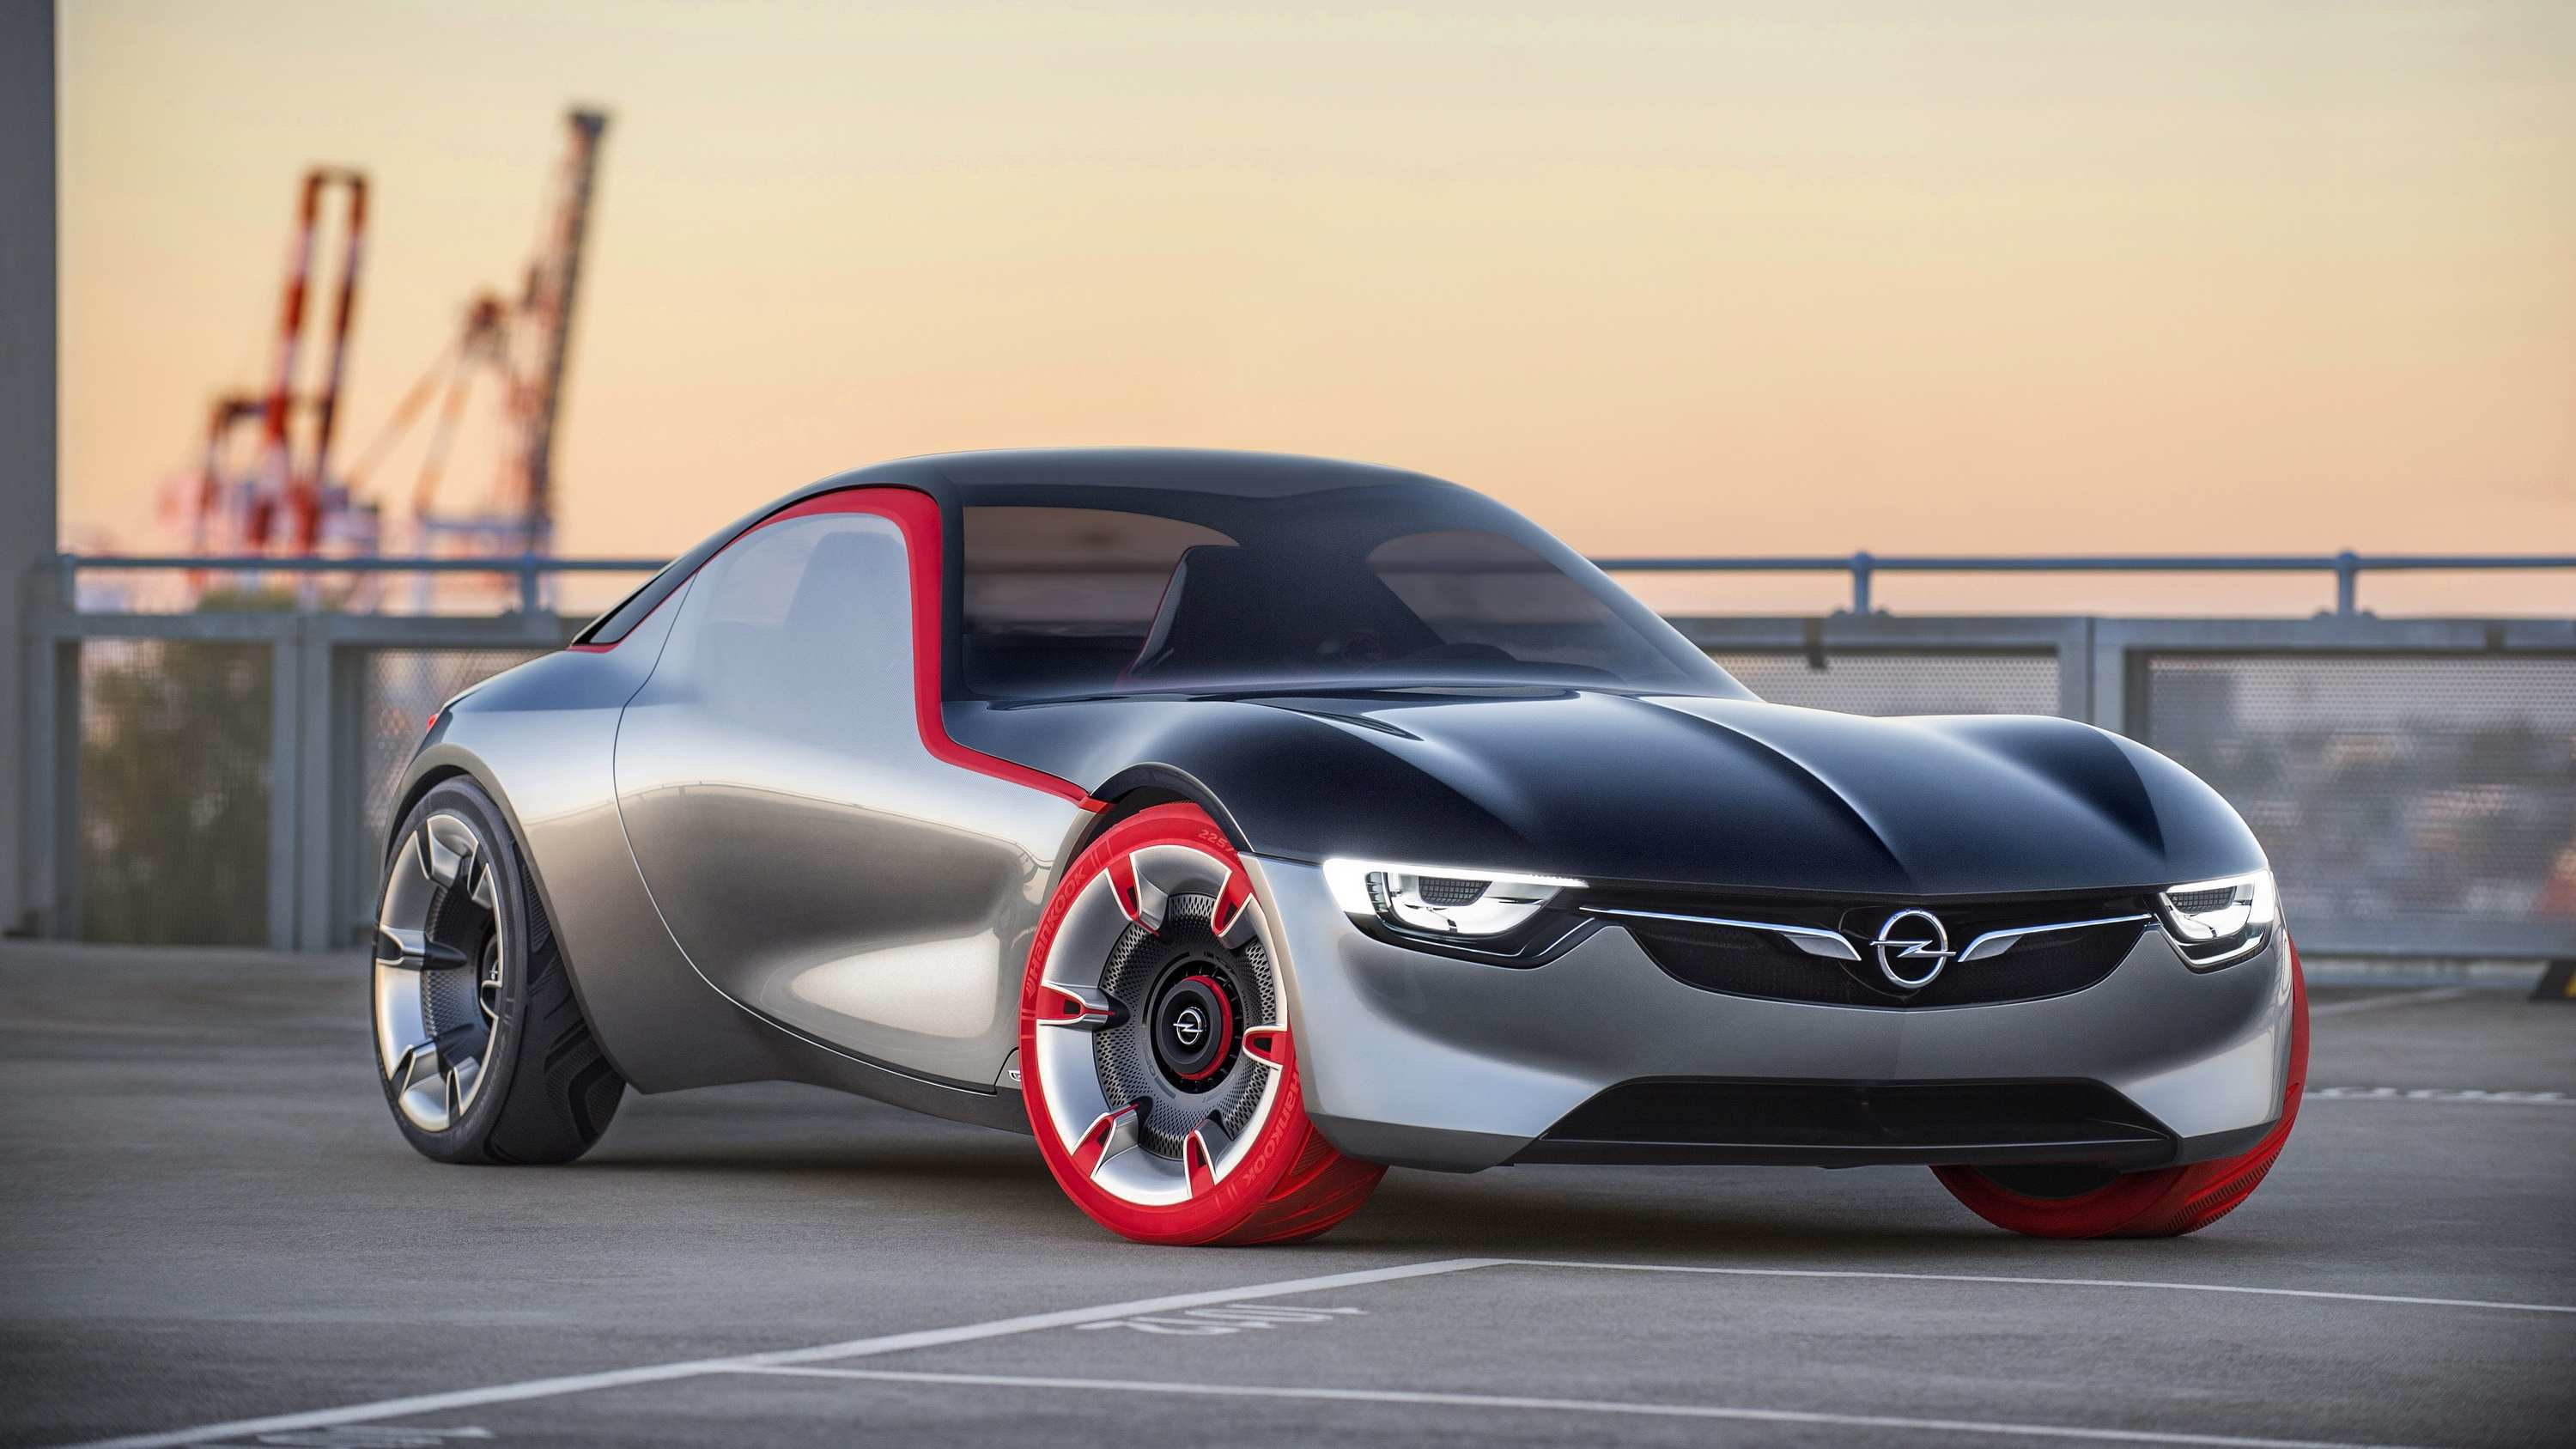 70 All New Opel Gt X 2020 Images by Opel Gt X 2020